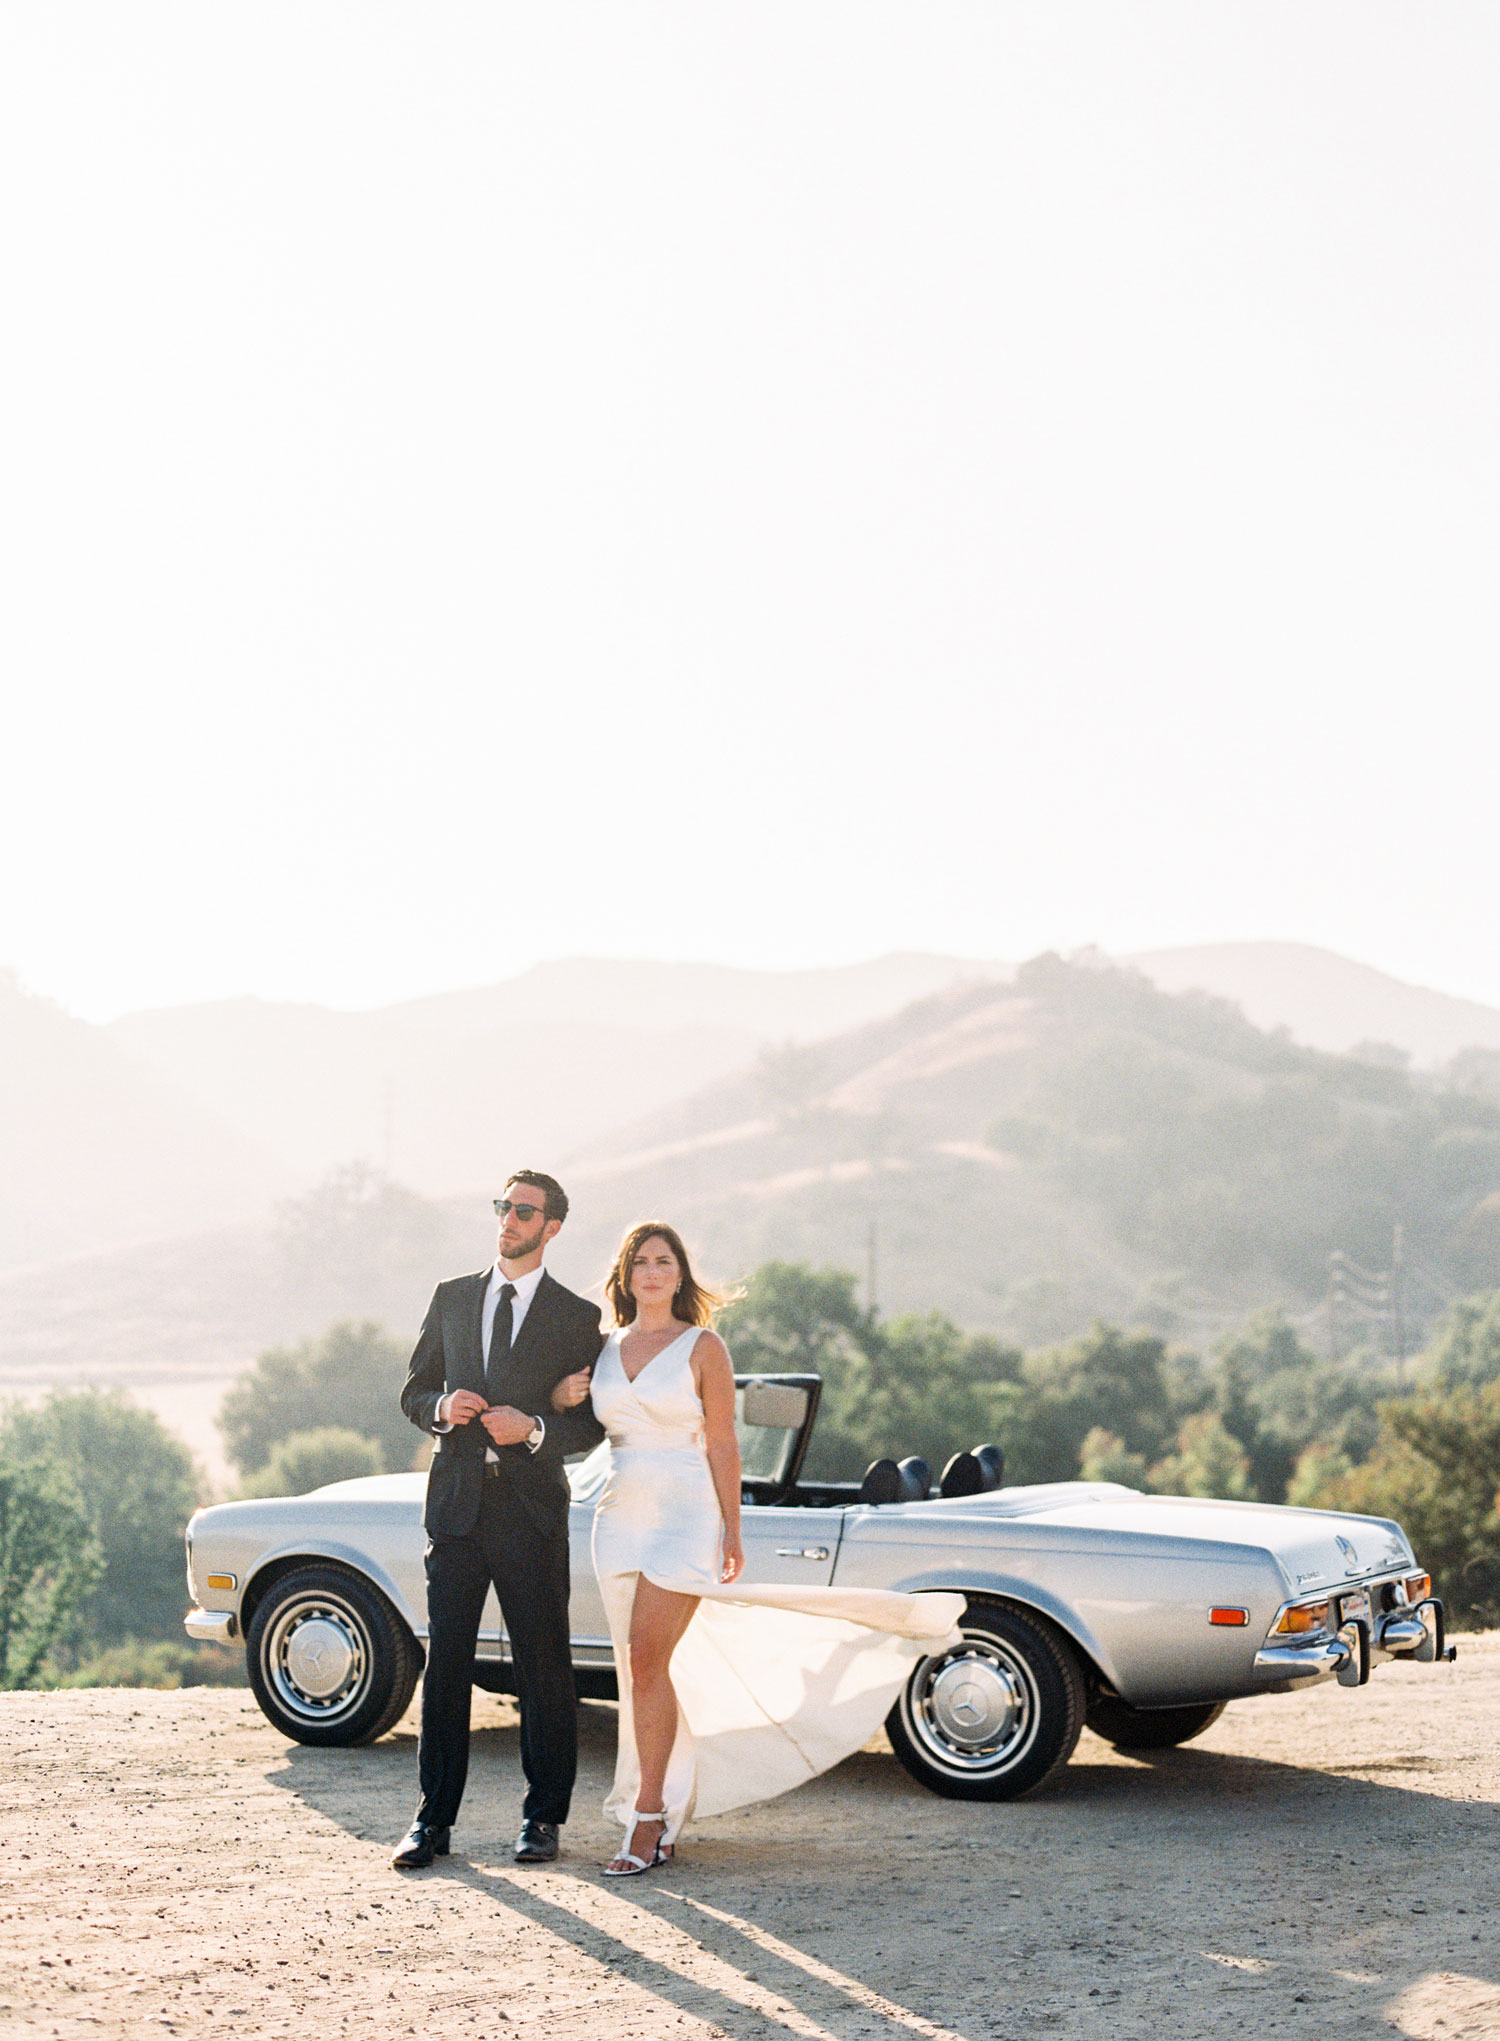 Engagement shoot photo ideas malibu classic car vintage mustang convertible bride with silk dress slit